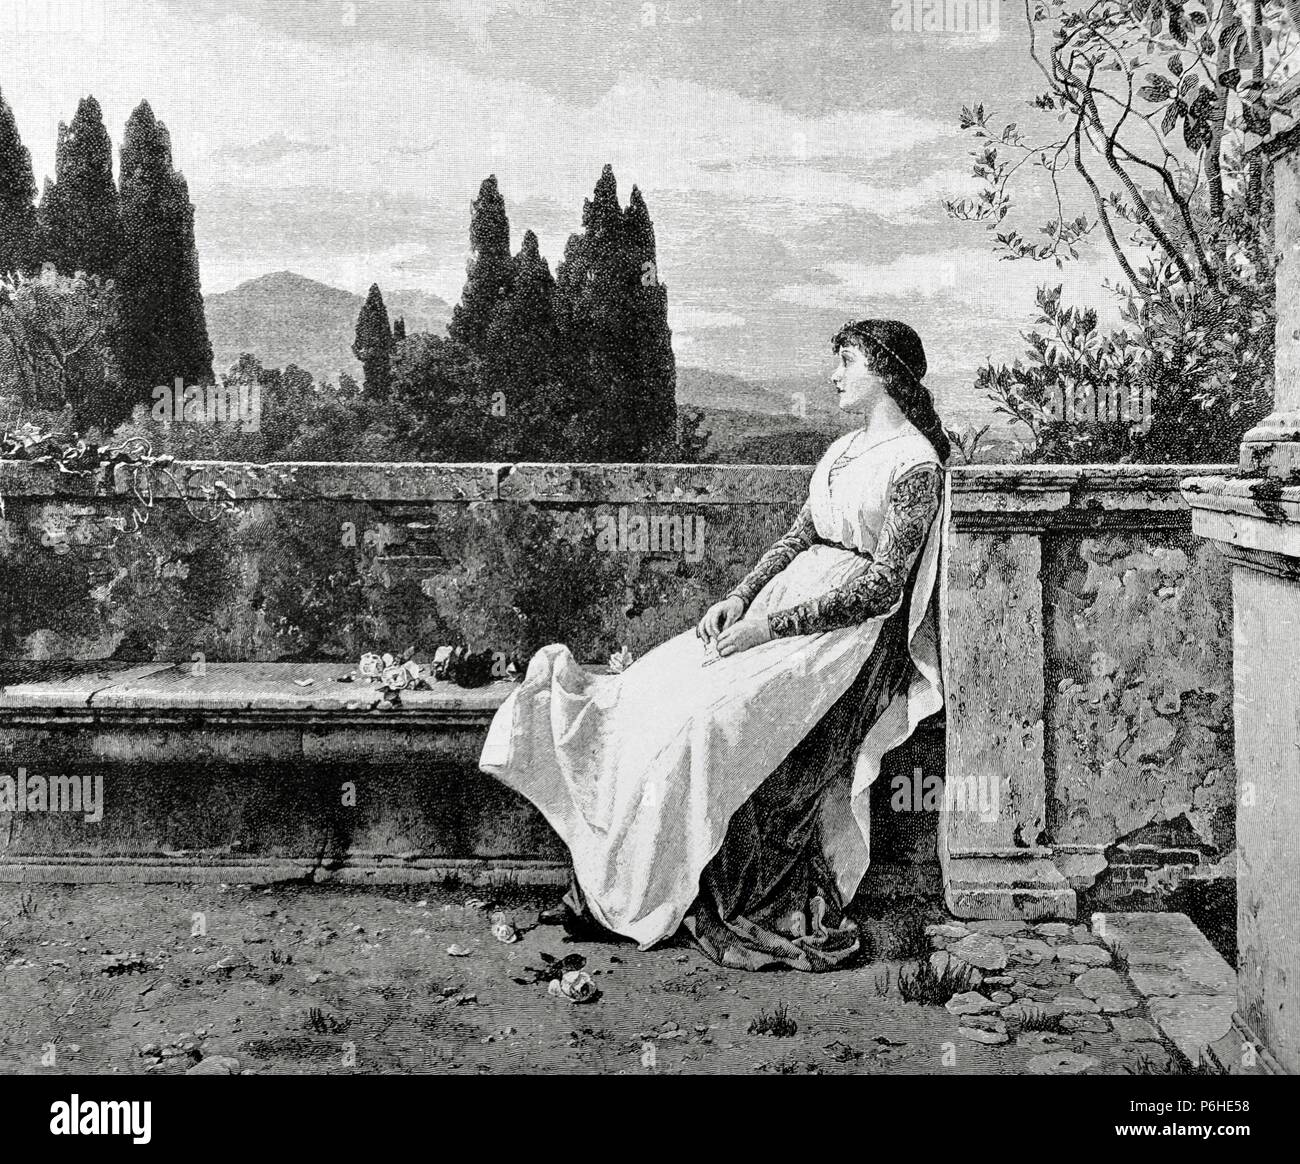 Matilda of Tuscany or Matilda of Canossa (1046-1115). Italian noblewoman. Supporter of Pope Gregory VII during the Investiture Controversy. Engraving by R. Brend'Amour. La Ilustracion, 1887. - Stock Image